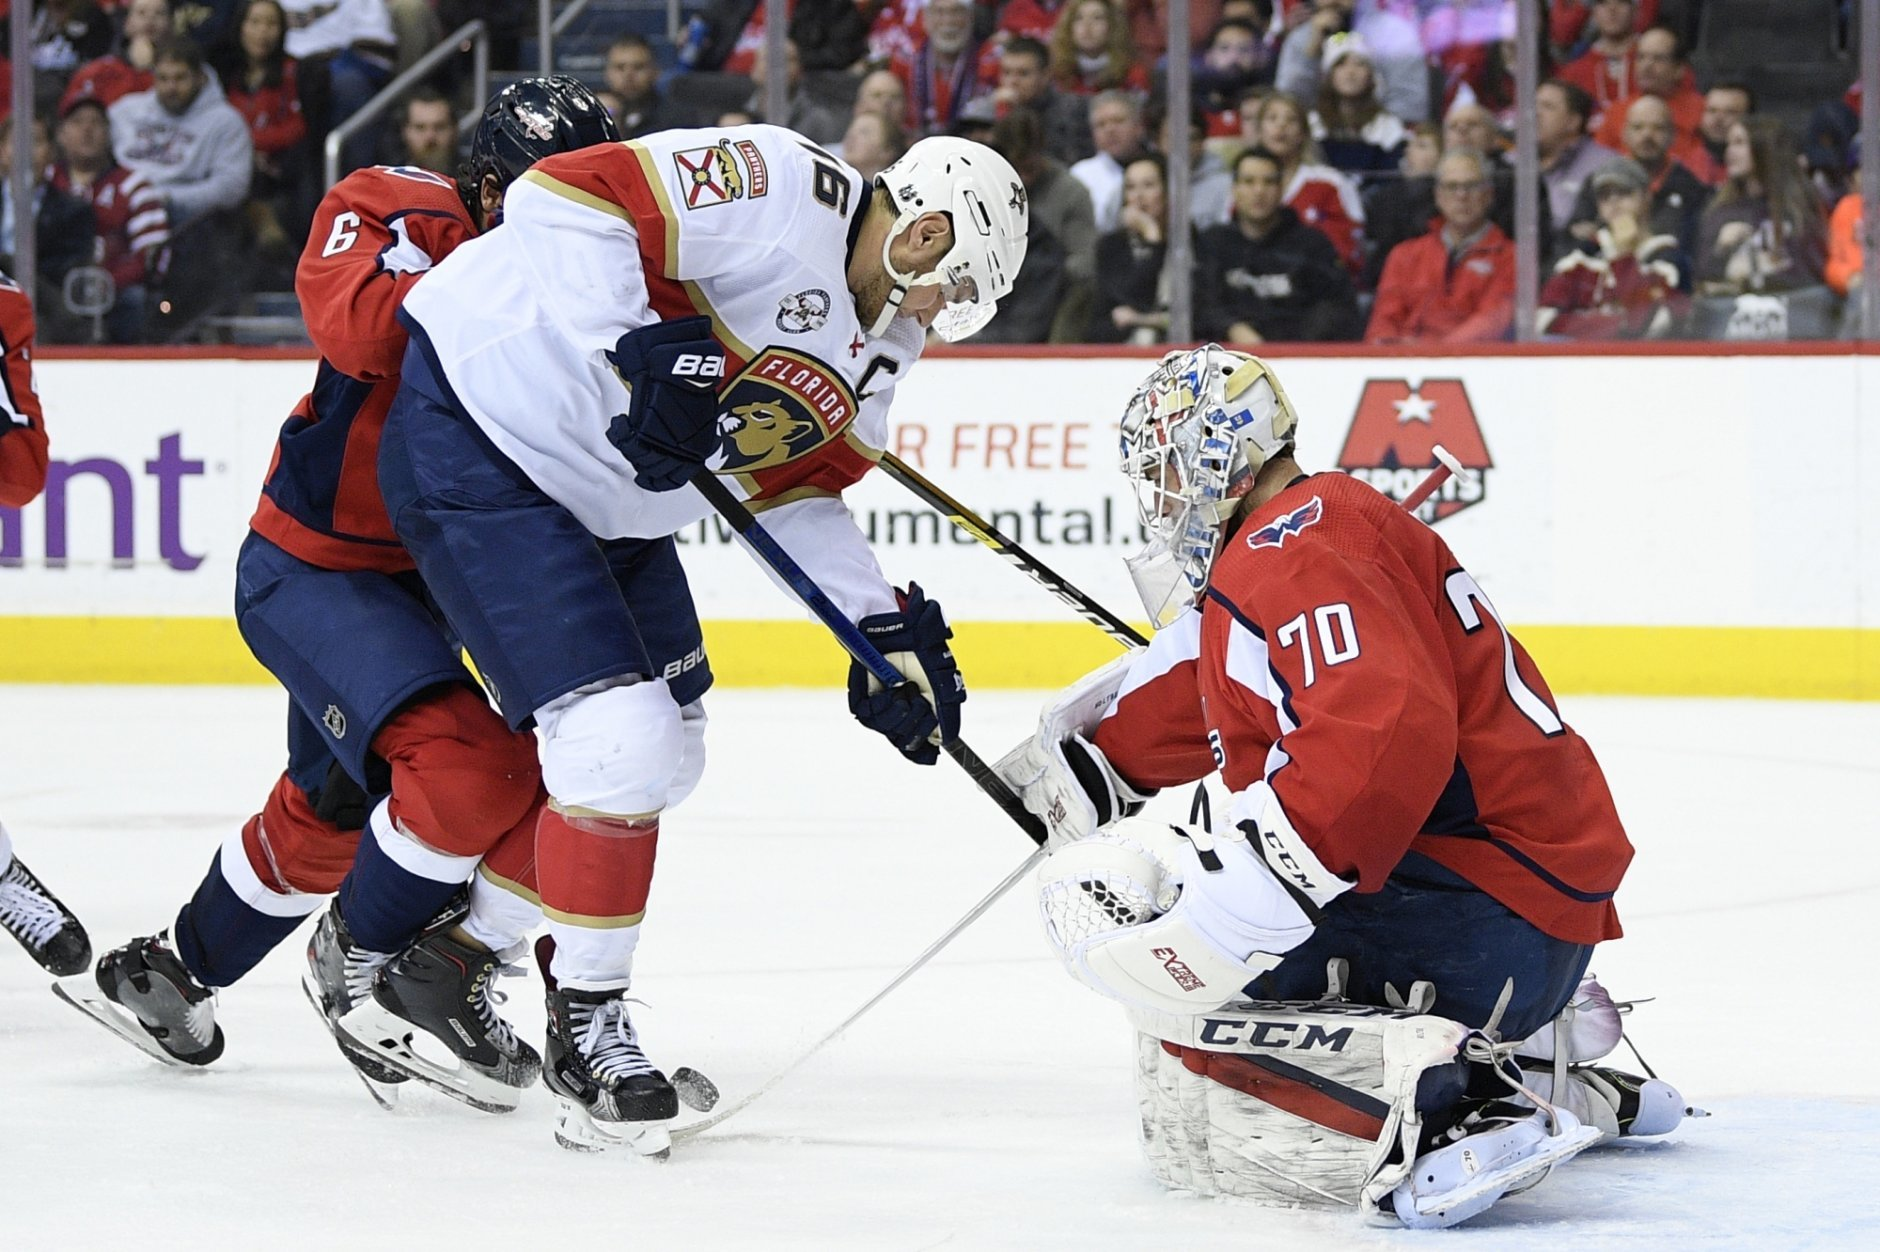 Florida Panthers center Aleksander Barkov (16), of Finland, battles for the puck against Washington Capitals goaltender Braden Holtby (70) during the second period of an NHL hockey game, Saturday, Feb. 9, 2019, in Washington. Also seen is Capitals defenseman Michal Kempny (6). (AP Photo/Nick Wass)